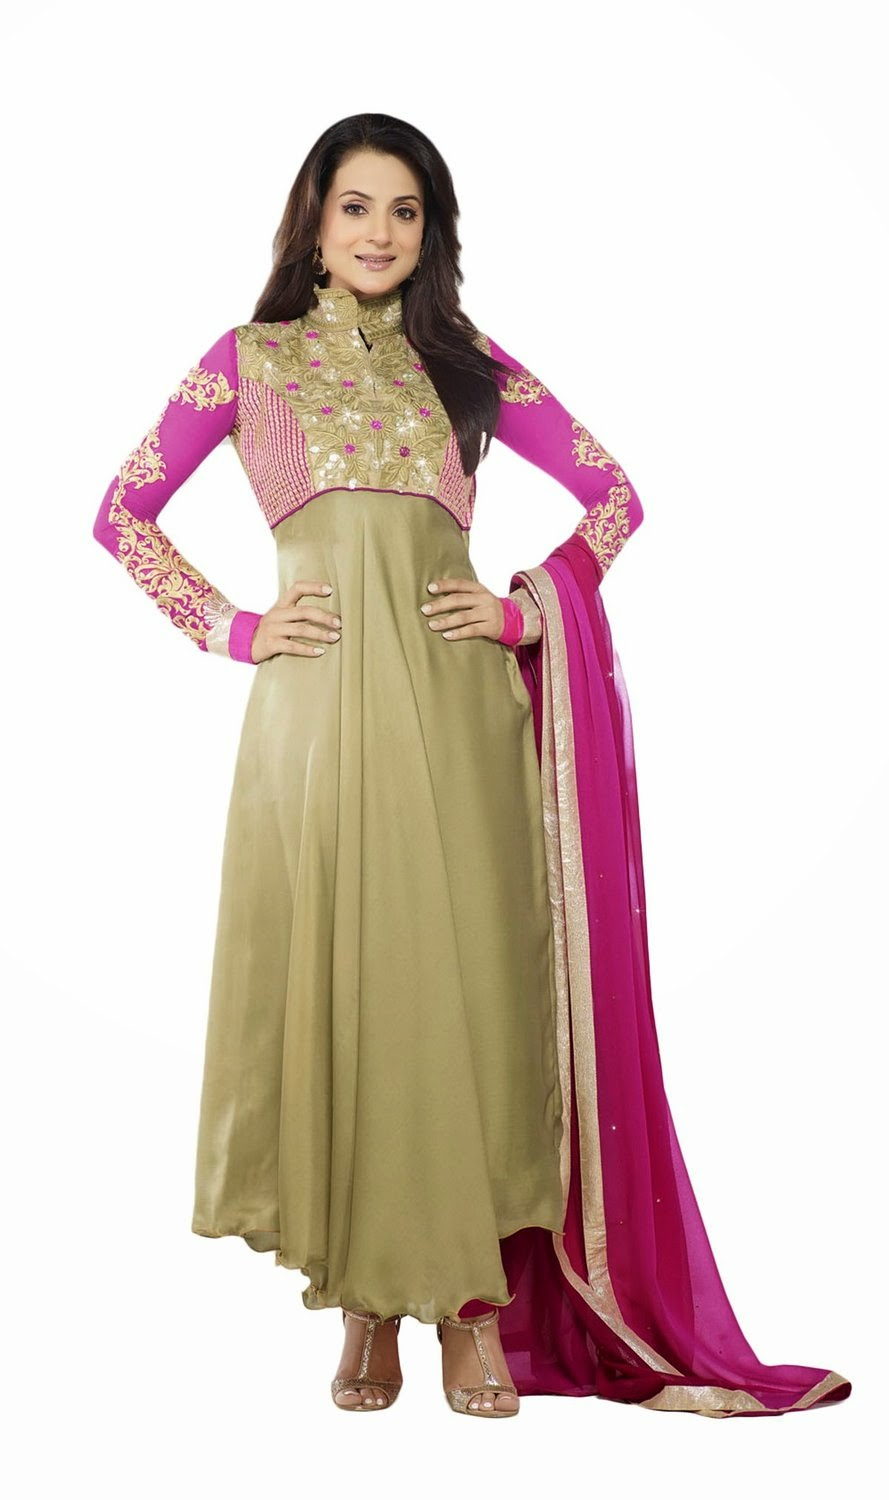 Women's Designer Clothing Stores Online Online Shopping Ethnic Wear